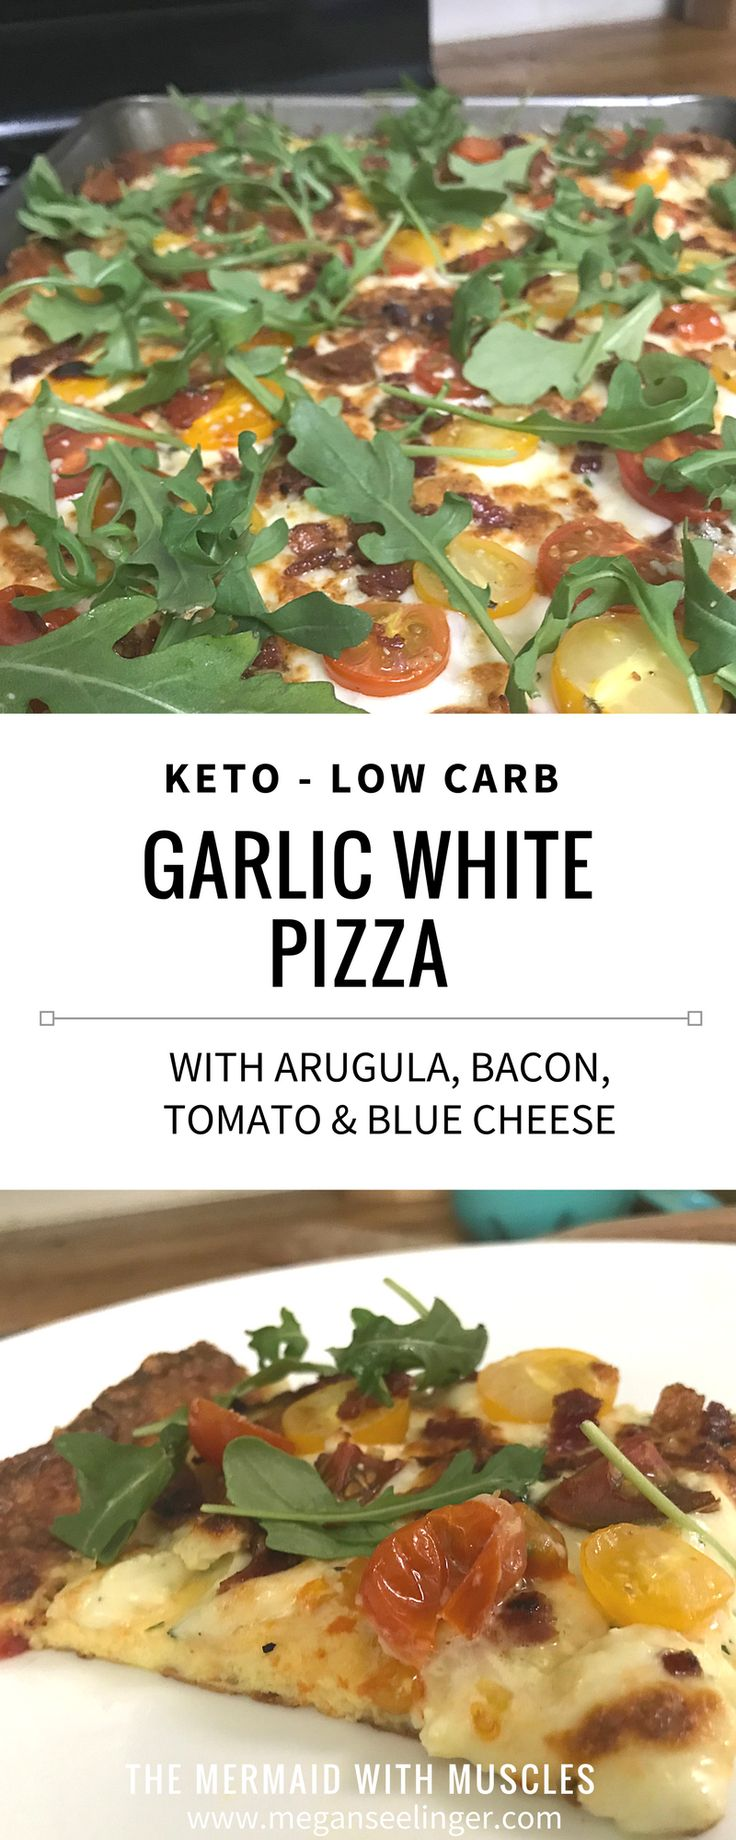 If you are on a low carb diet plan you don't have to give up your favorites! This pizza recipe has a keto pizza crusts primarily made of cheese, a garlic white pizza sauce perfect for any keto meal plan and some of my favorite pizza toppings, arugula, tomatoes, bacon and blue cheese. This is a pretty easy recipe to follow and so worth it!